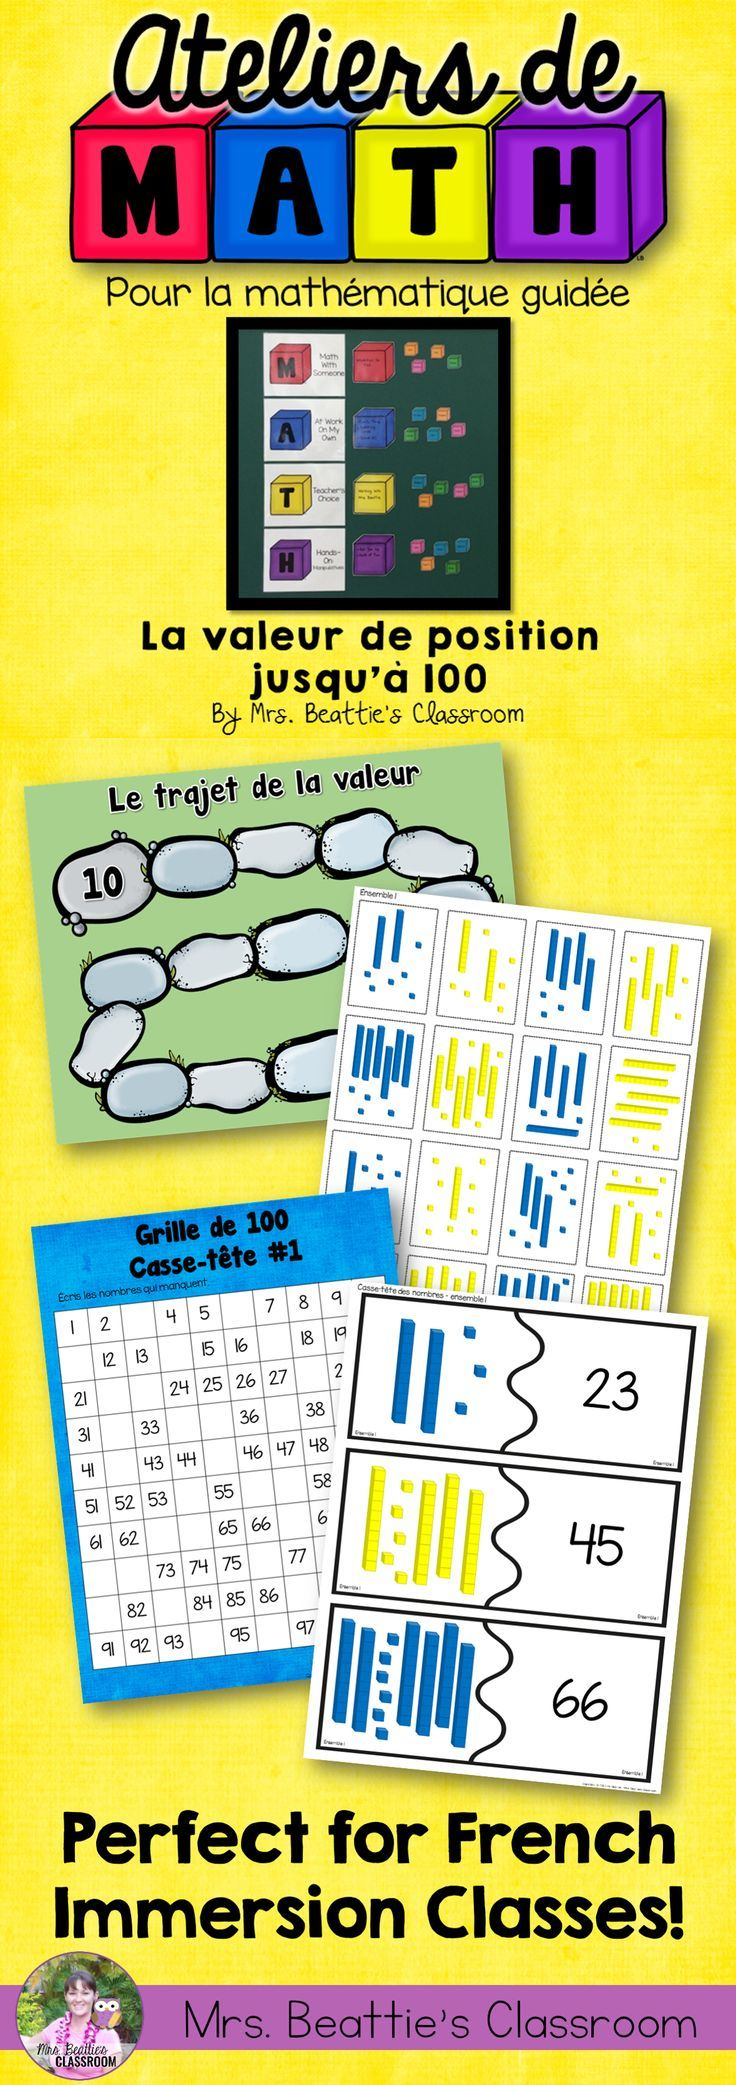 Using a Guided Math or Daily 5 Math approach in your French Immersion classroom? This Guided Math: Place Value to 100 resource from Mrs. Beattie's Classroom is for you! Just the right number of activities for three weeks of rotations! All student pages are French, teacher instructions in both English and French! #guidedmath #french #enfrancais #centres #classroom